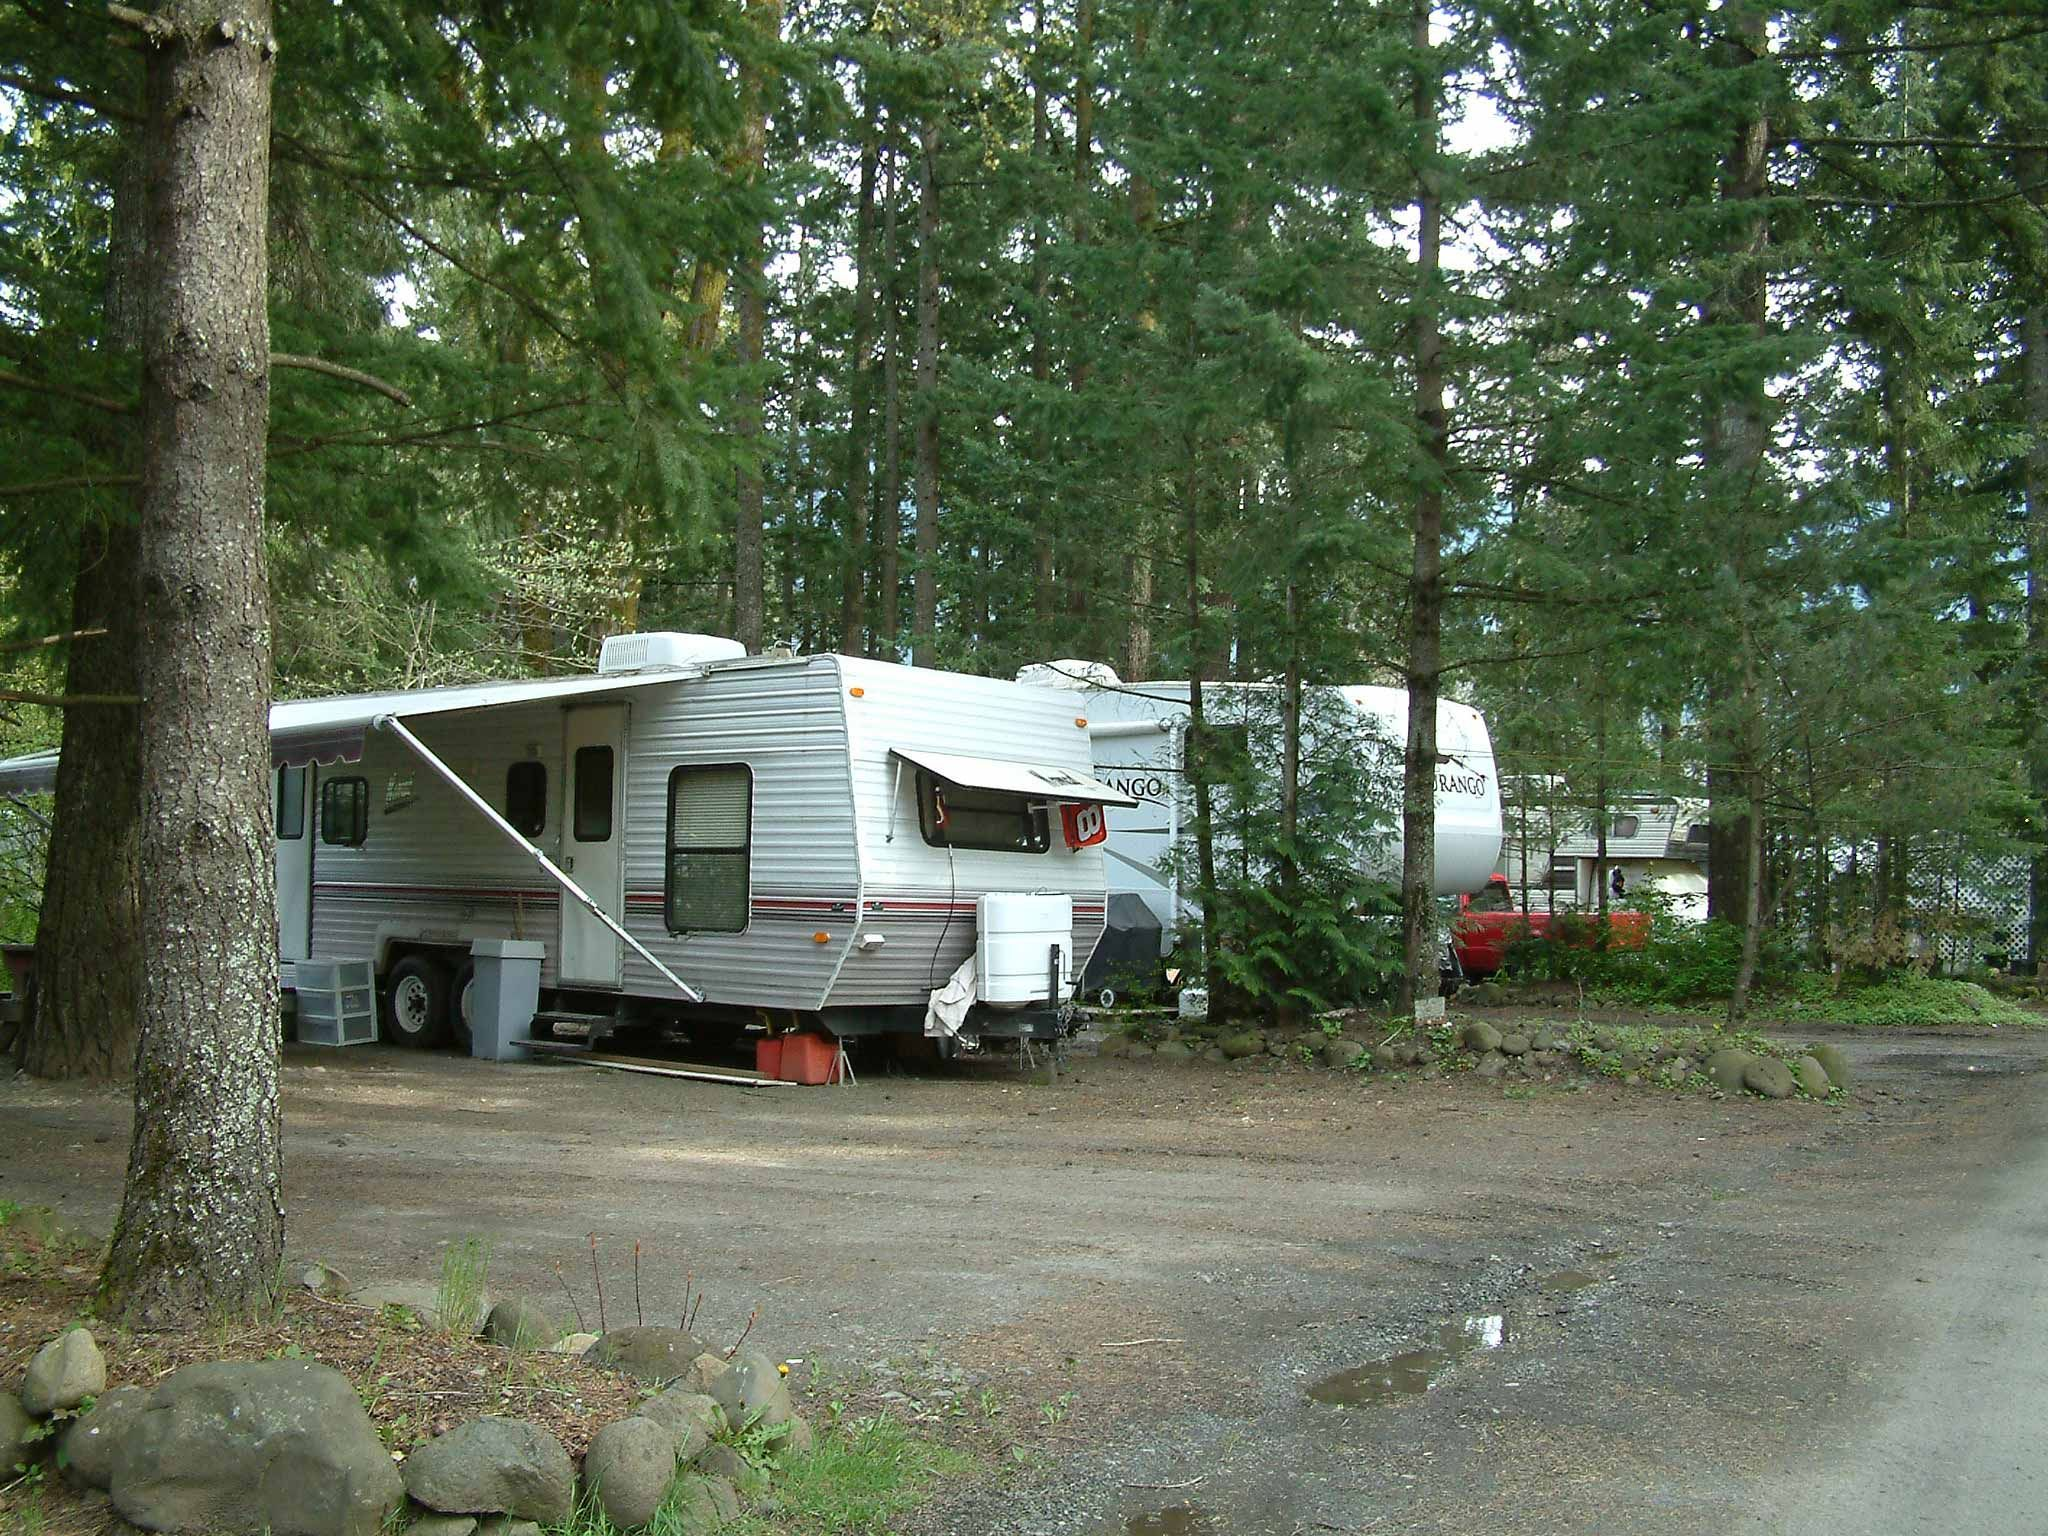 Campground rv park offers some secluded rv camping sites